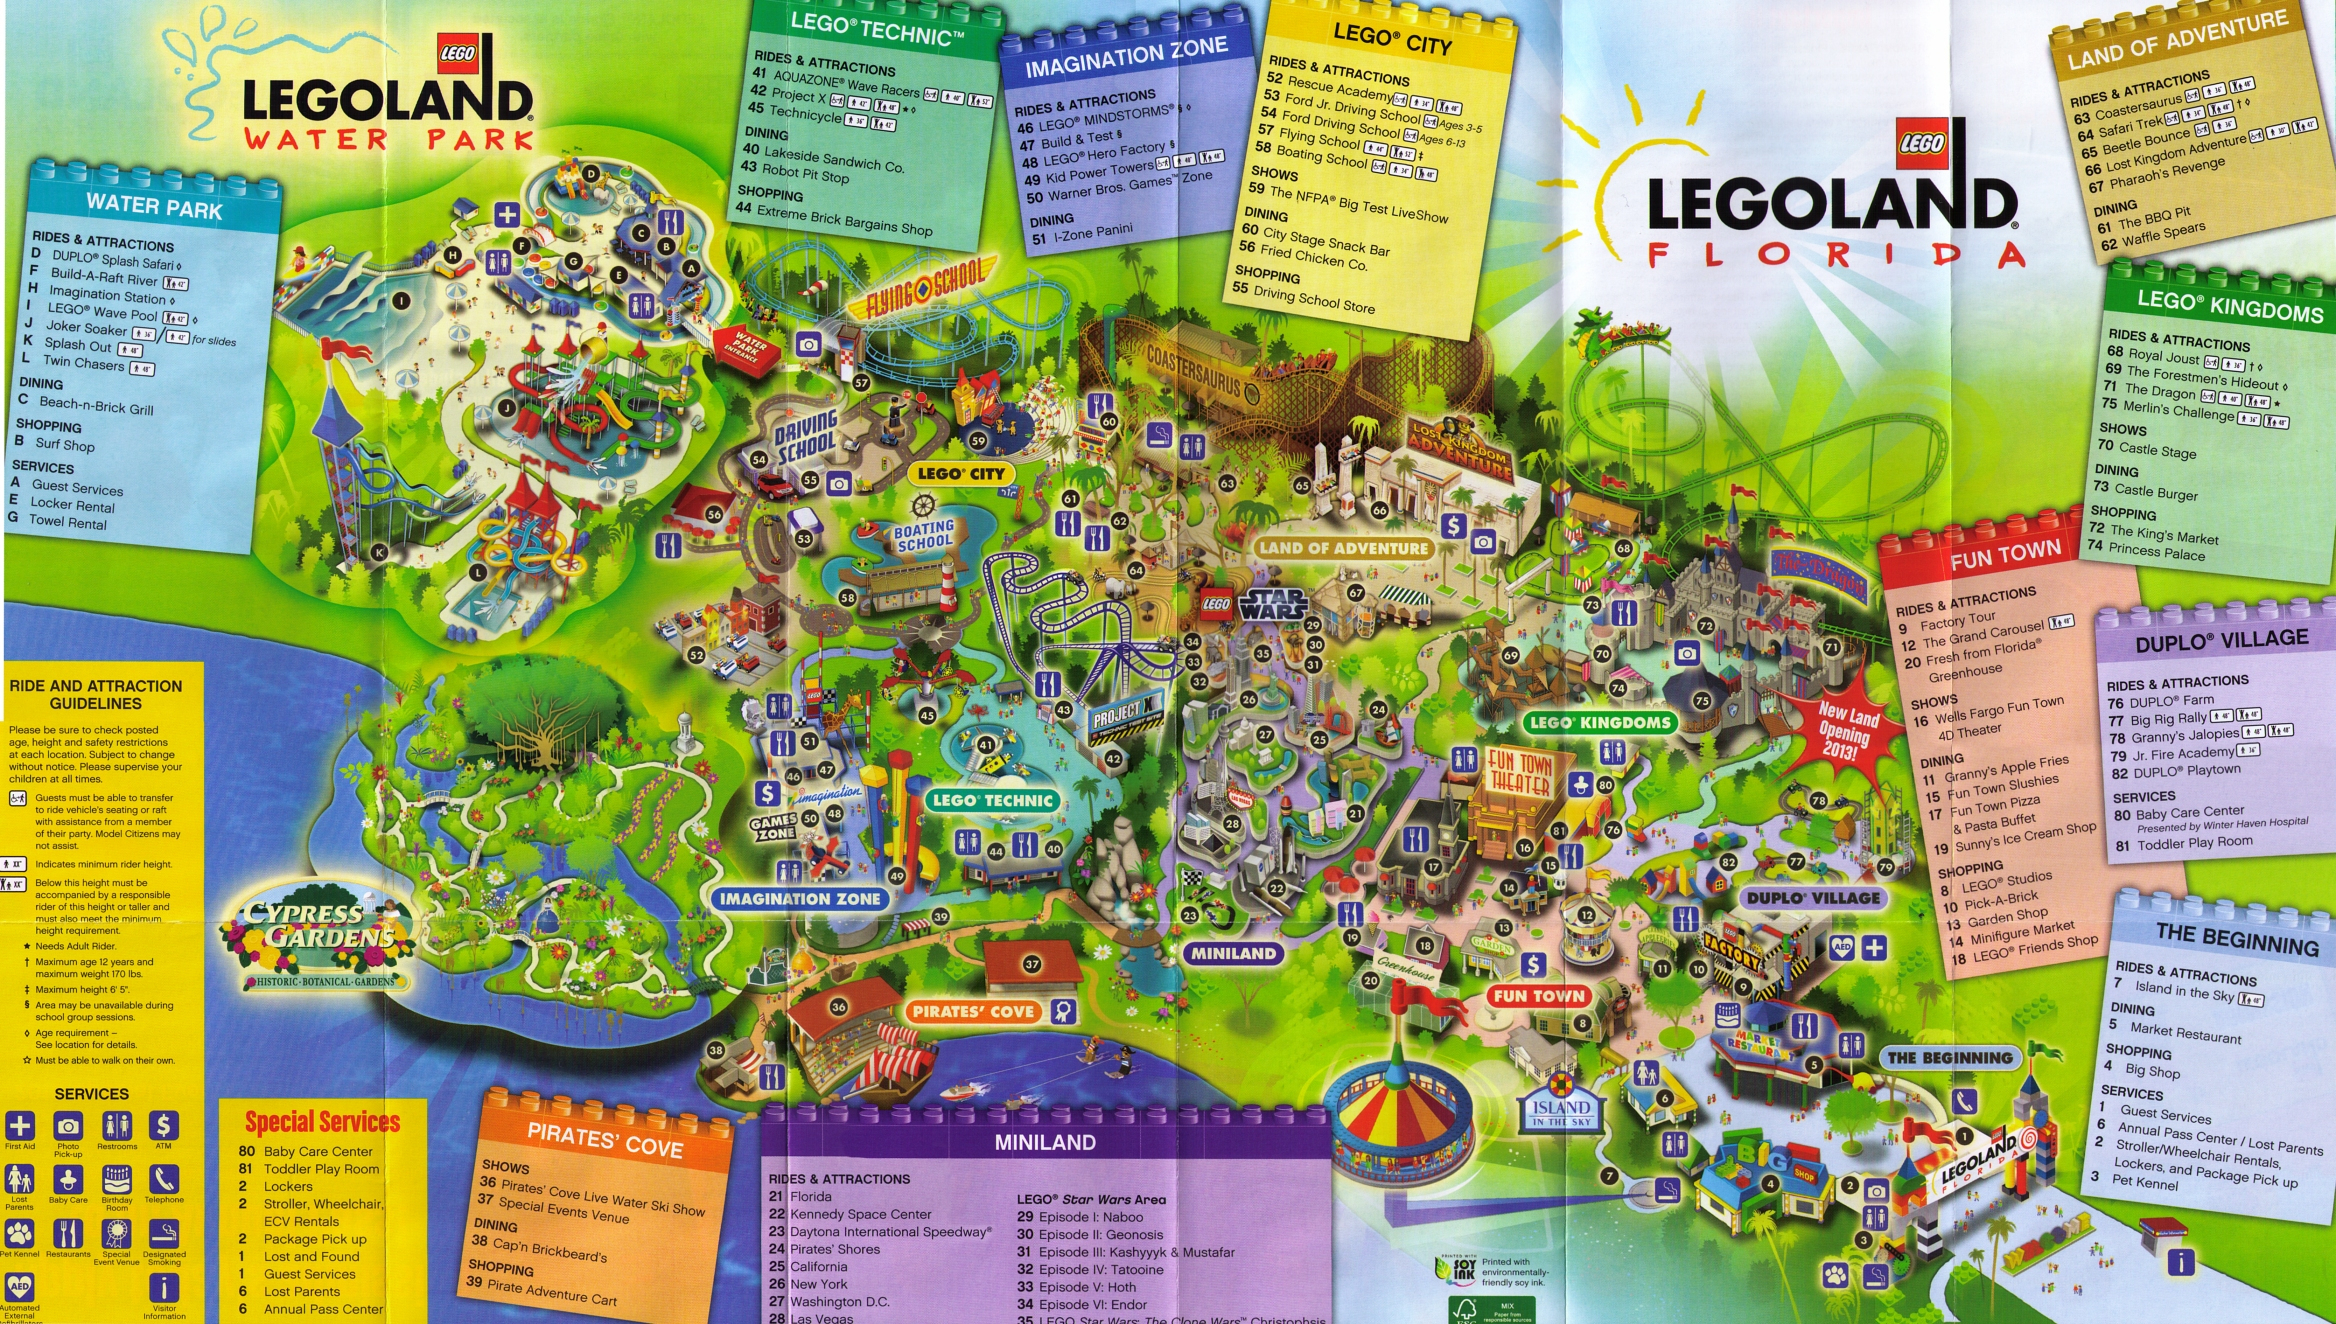 Park Map 3 At Legoland Florida Photos - Legoland Florida Hotel Map